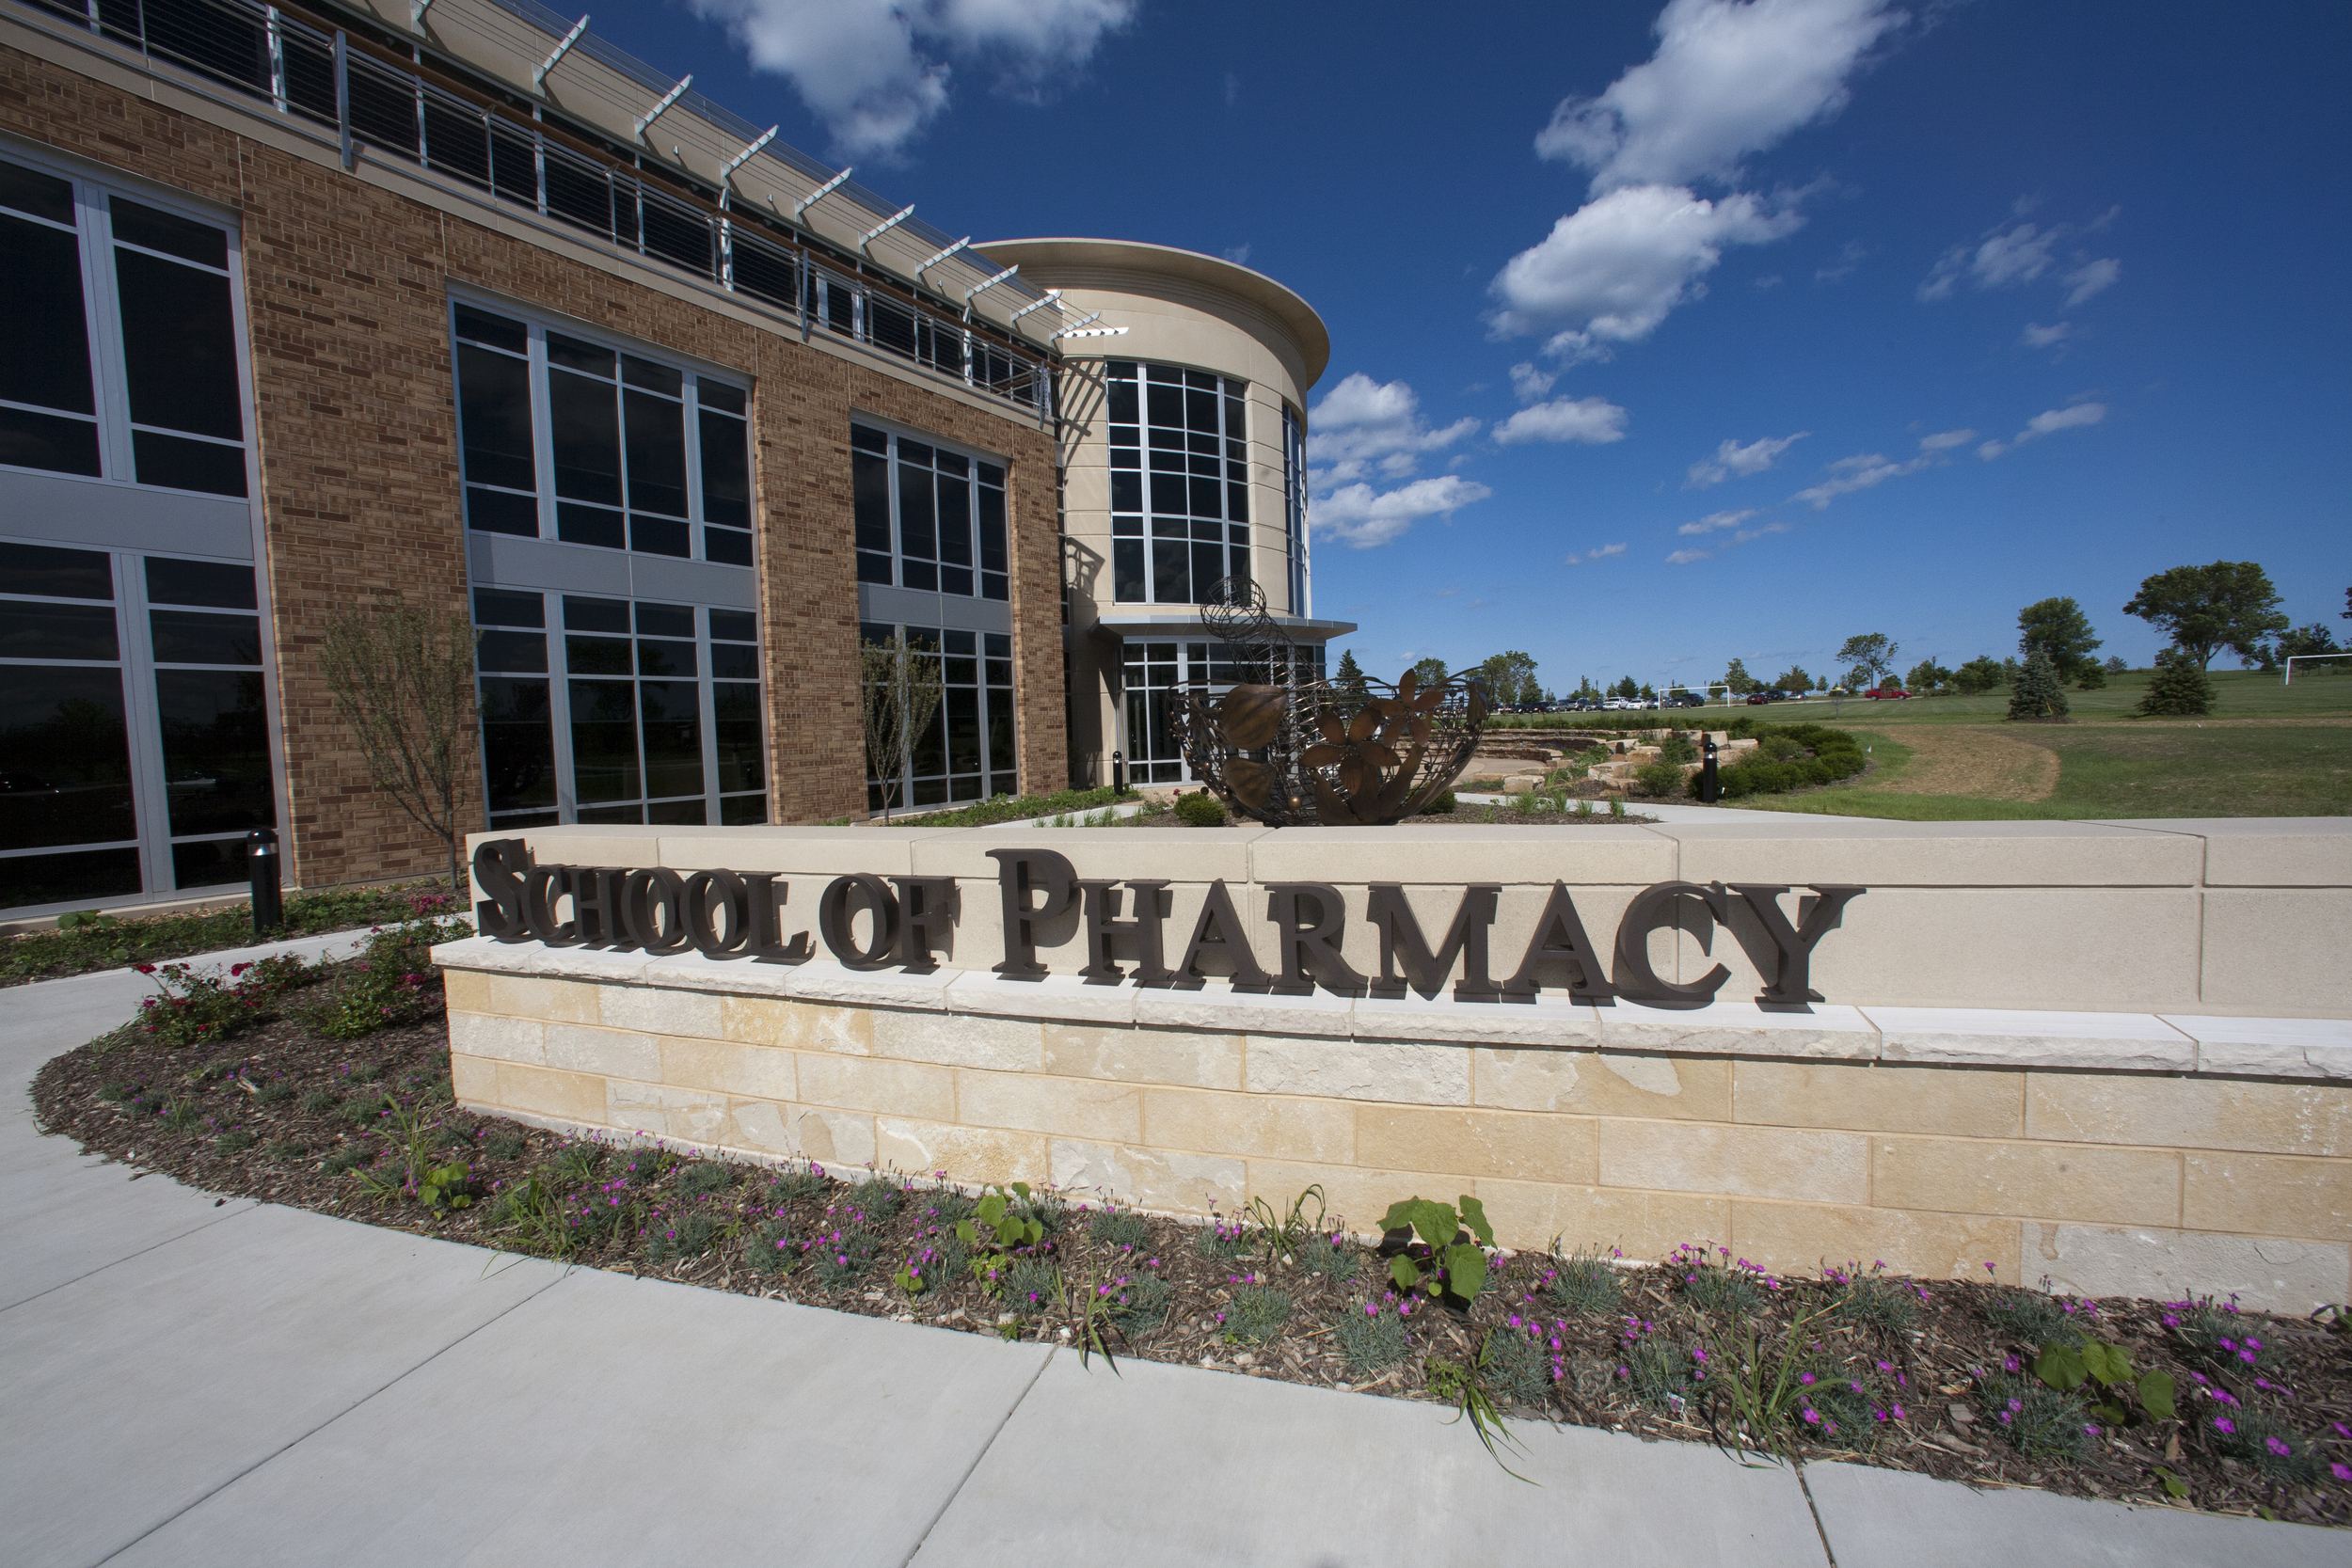 CUW - School of Pharmacy (3).jpg